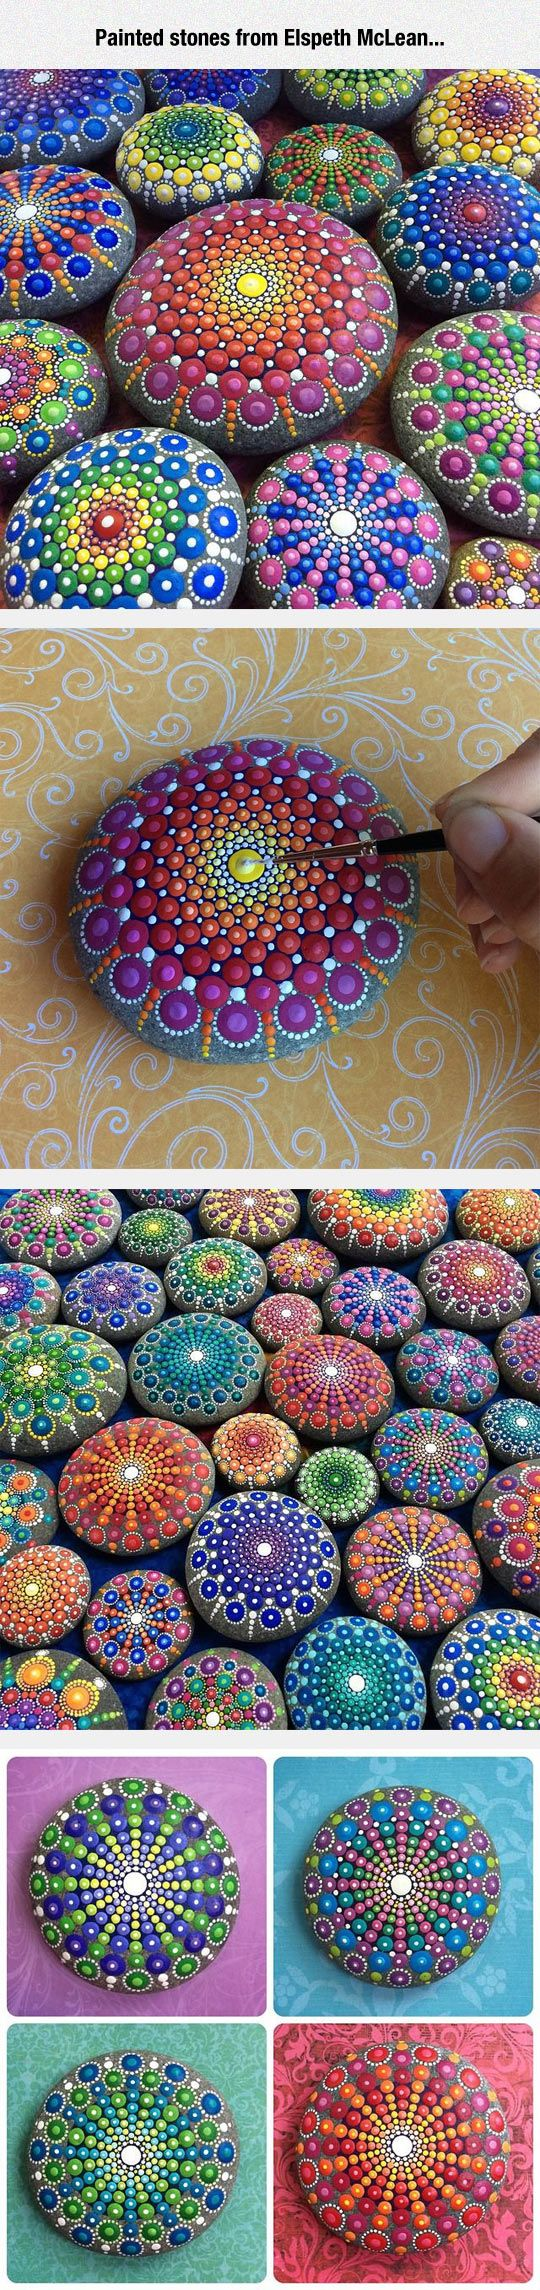 painted stones by elspeth mclean | cool-painted-stones-Elspeth-McLean